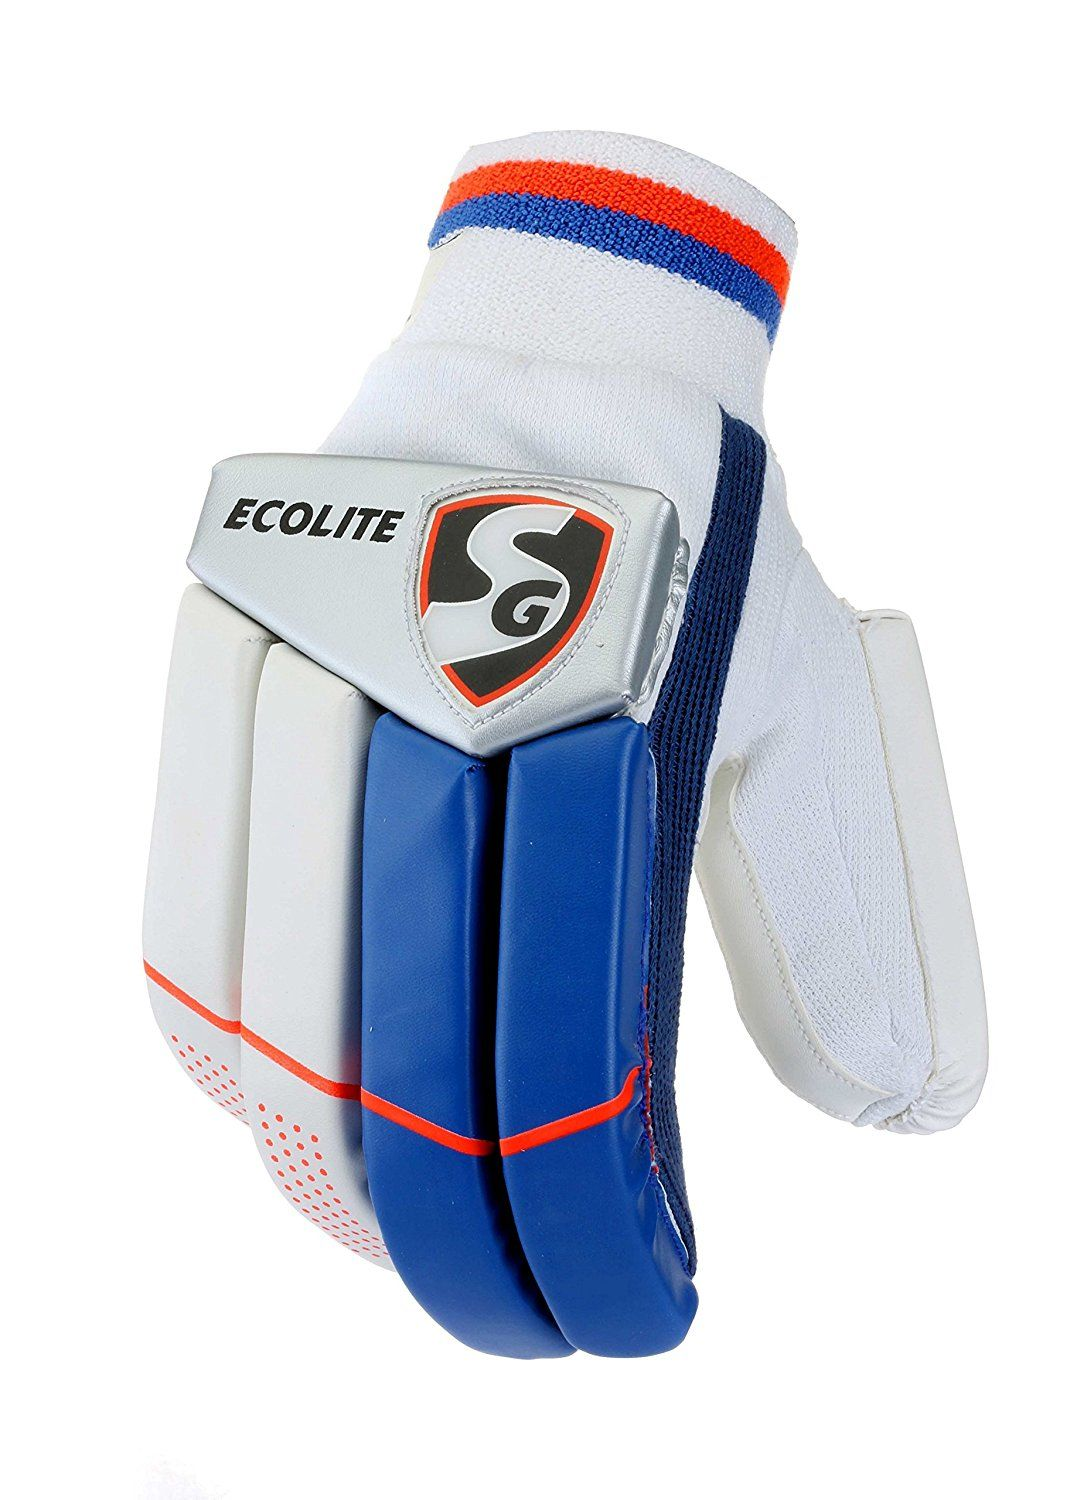 Buy SG Ecolite Batting Gloves (Color May Vary) Online at